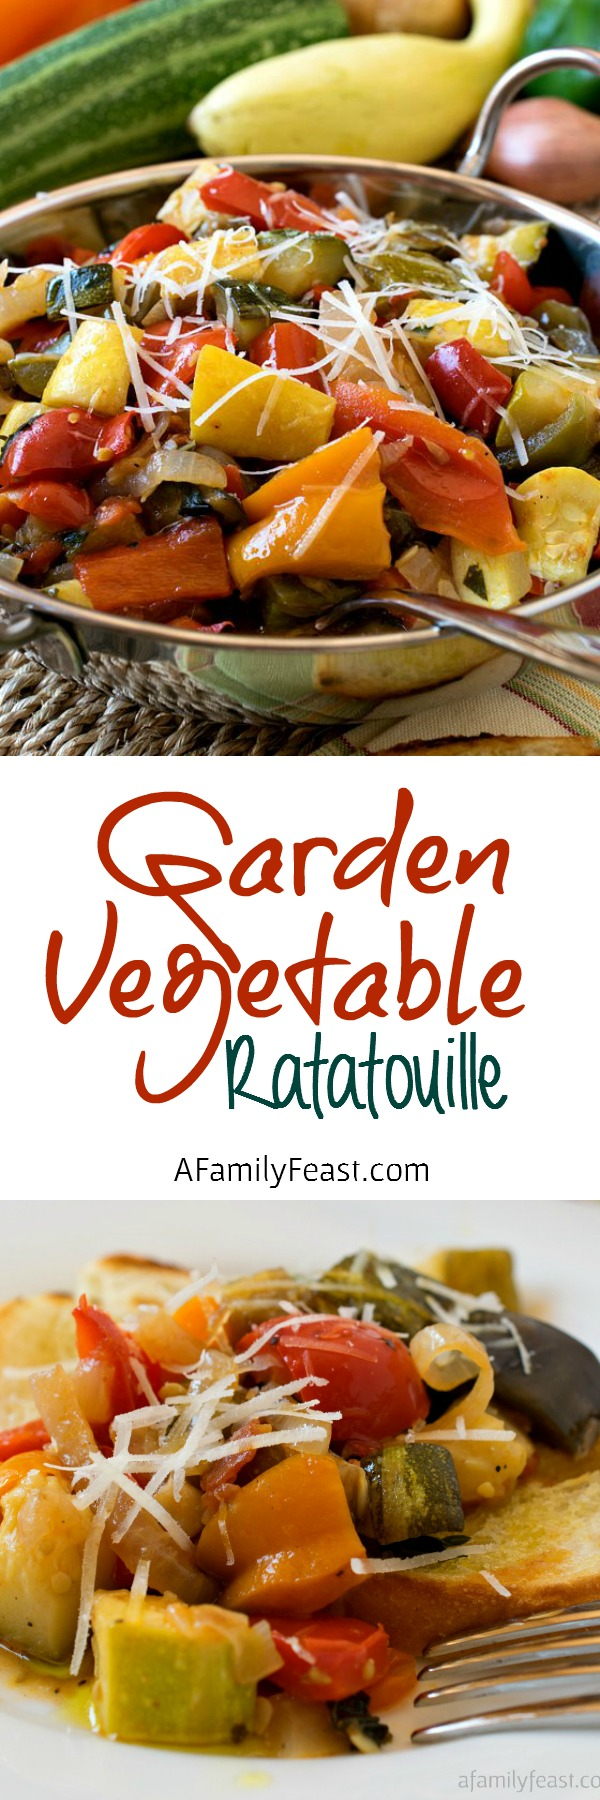 Garden Vegetable Ratatouille - A delicious way to eat your veggies all year round - and especially when garden vegetables are in peak season!